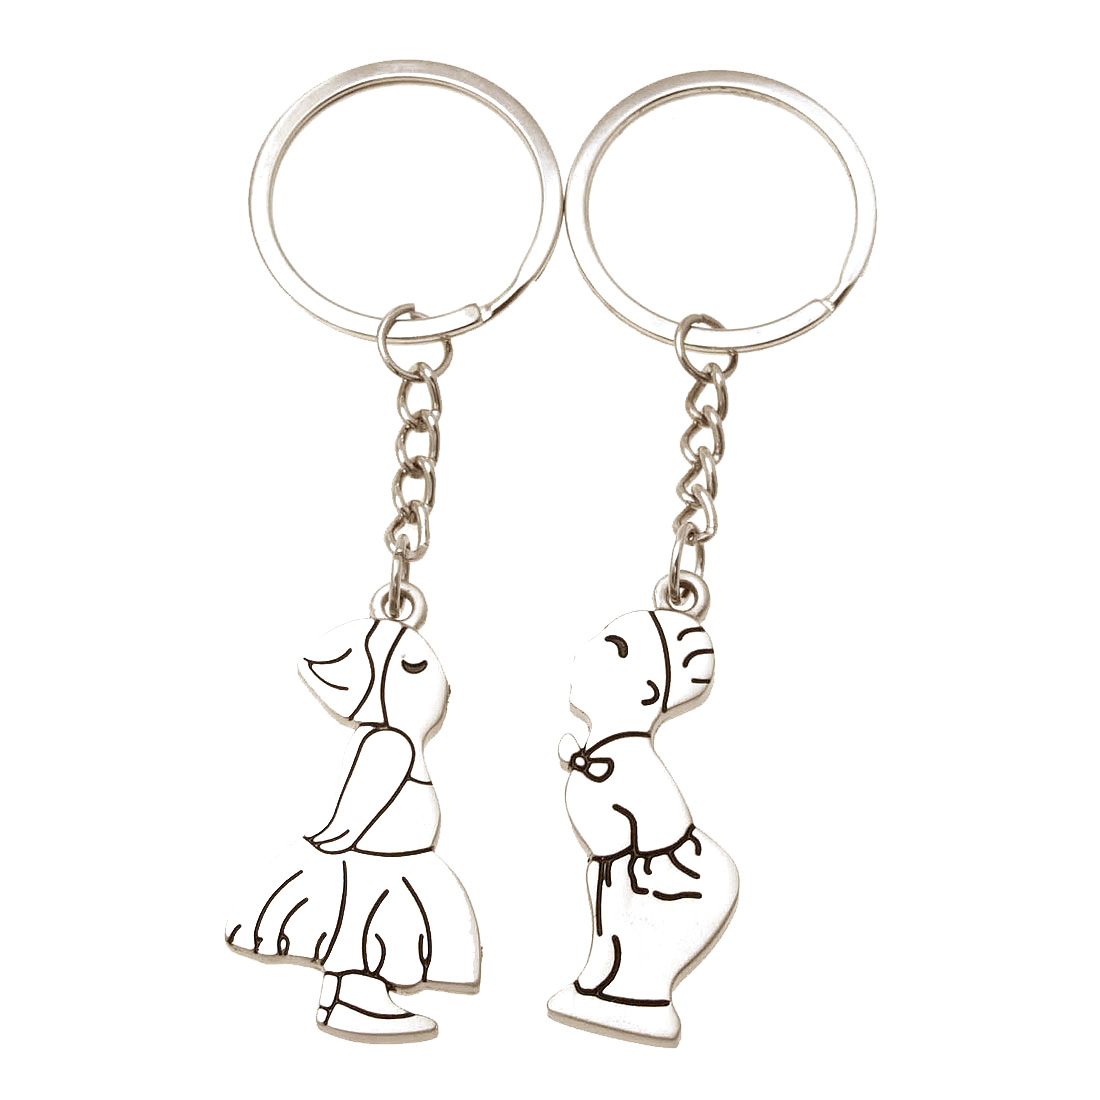 and Fashionable Key Chain with Persons Pendant Silvery